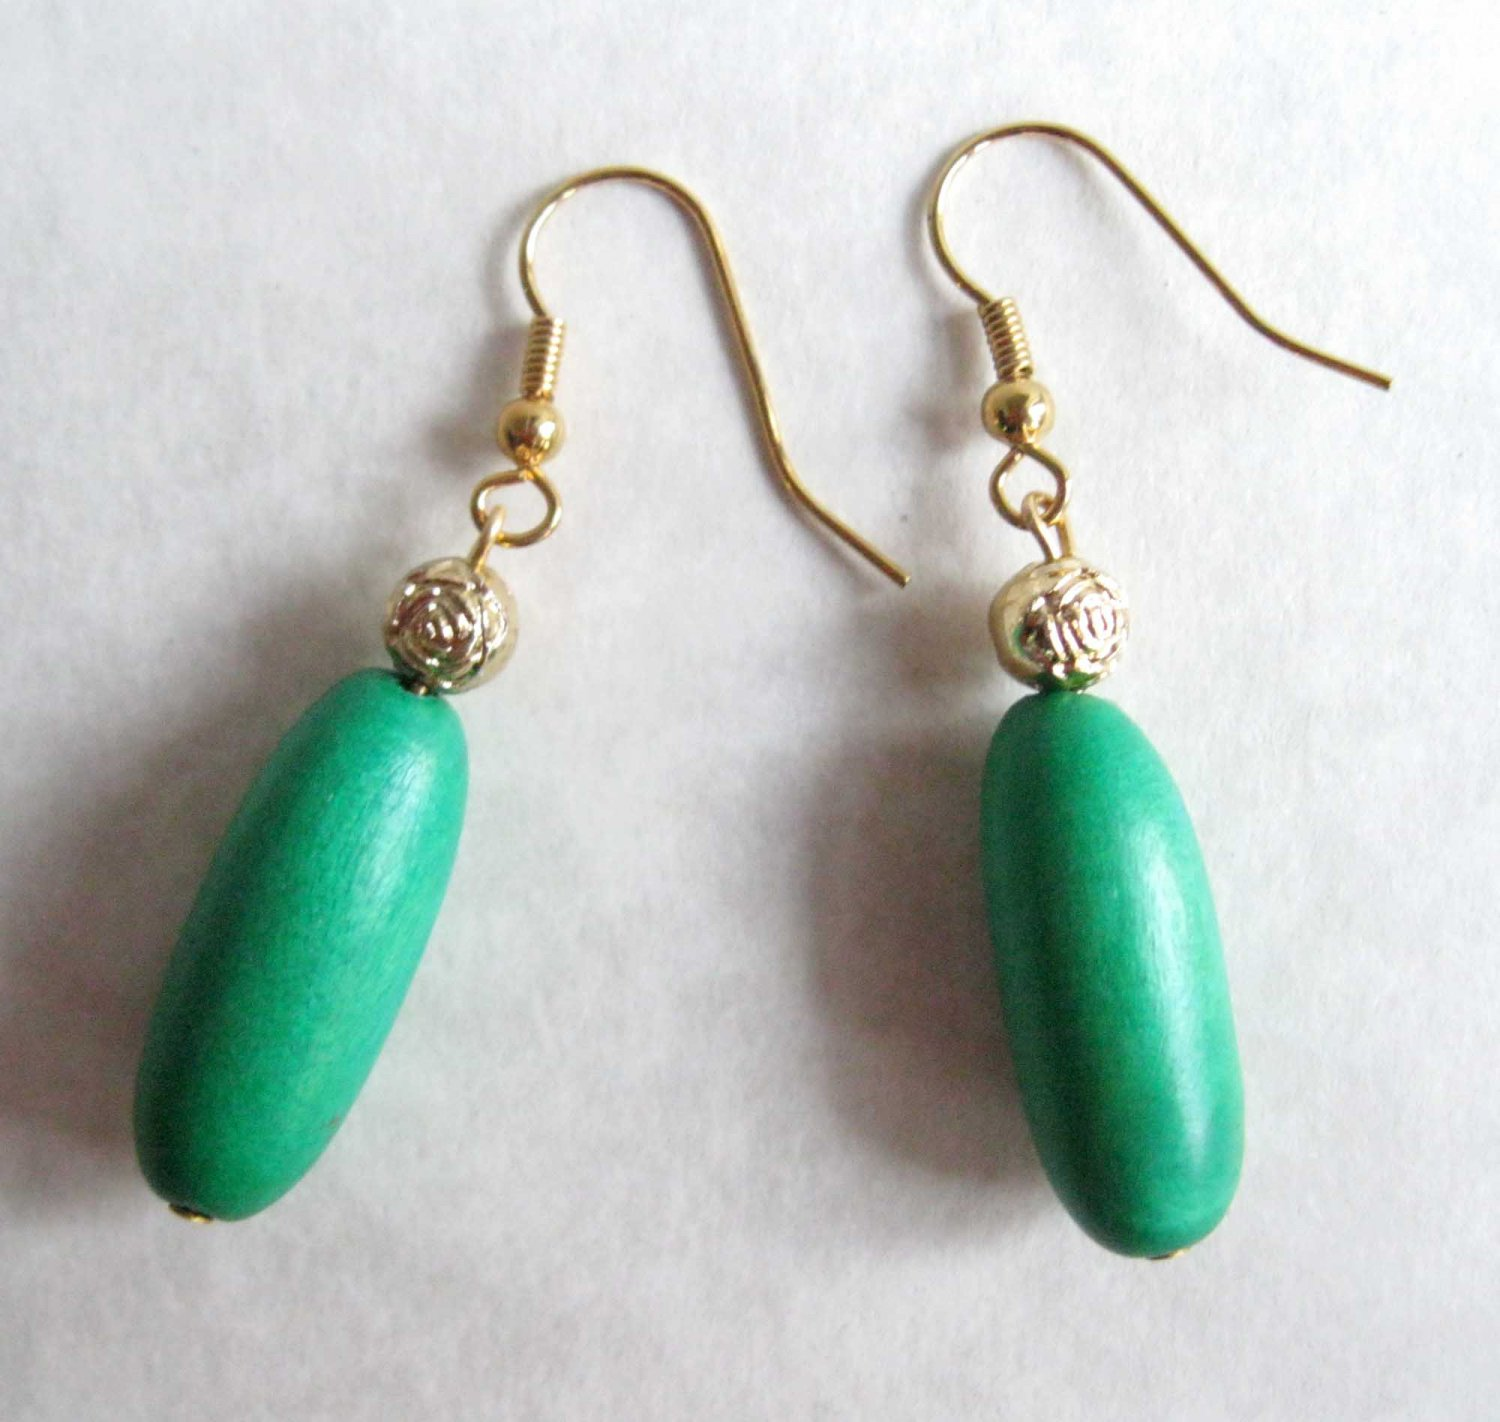 Green wood with gold flower fashion drop earrings